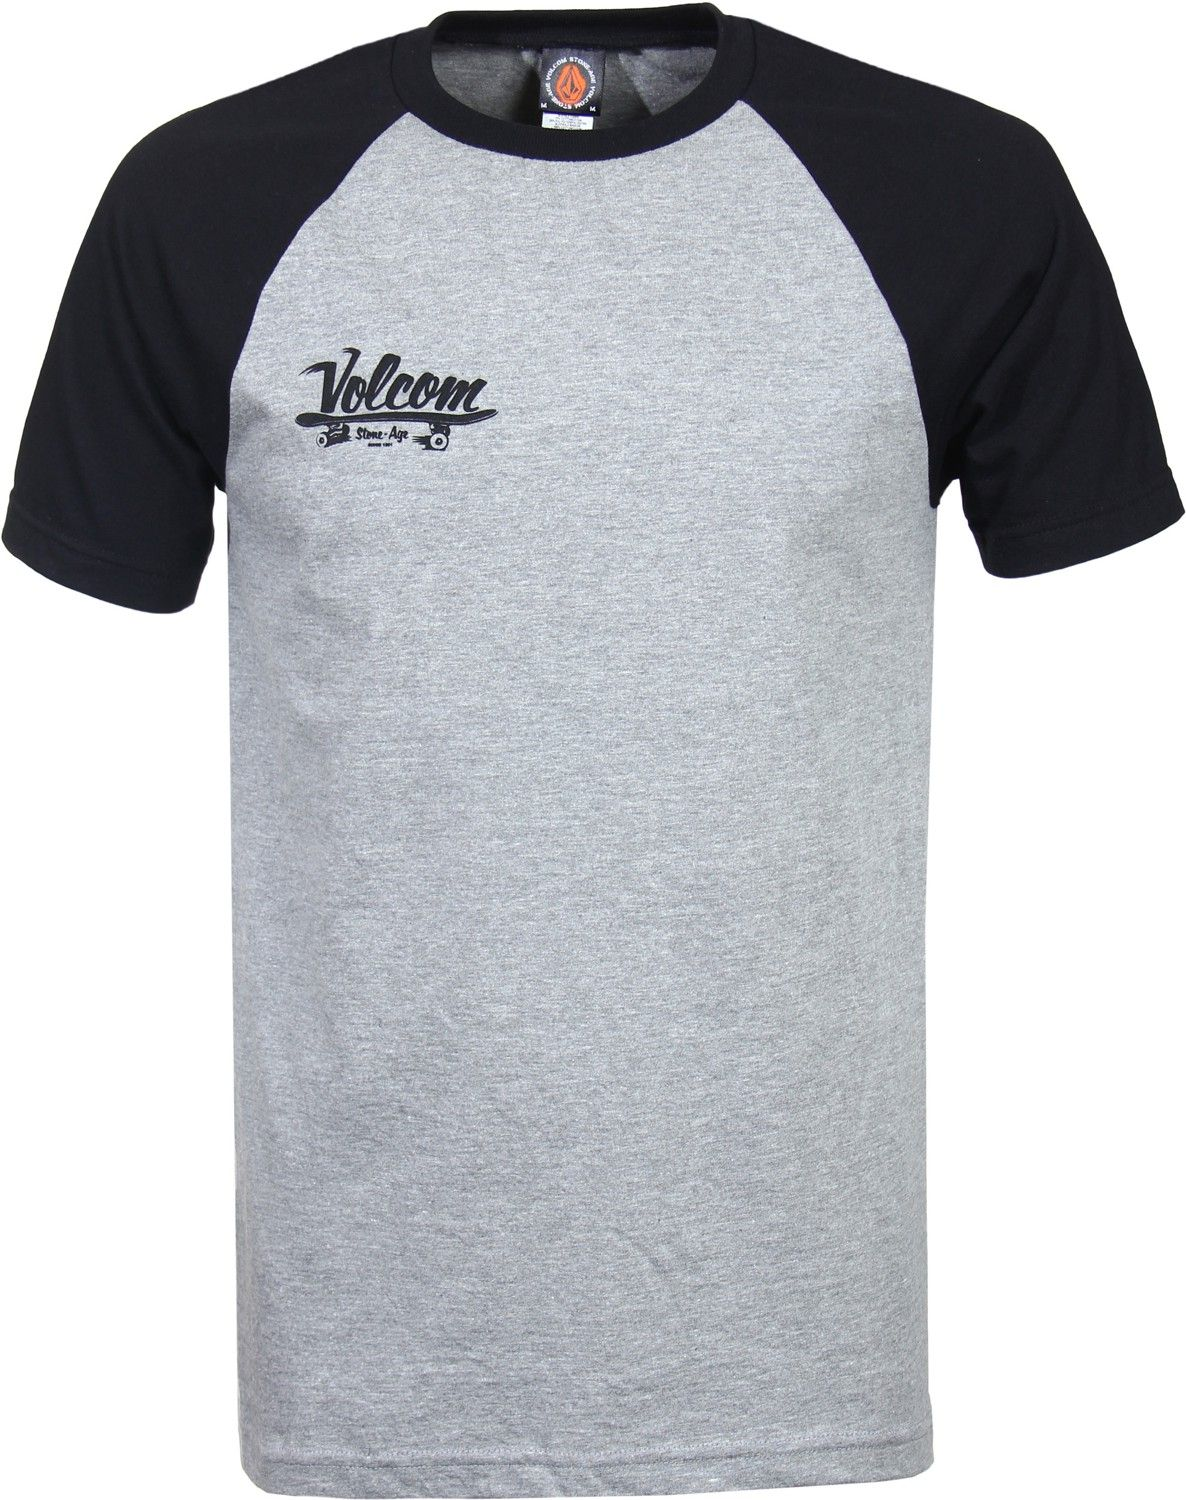 Pro tag 100 cotton 3 4 sleeve raglan baseball shirt in white black - Volcom Skate Club Stone Age Raglan T Shirt Heather Grey Men S Clothing Shirts T Shirts Short Sleeve T Shirts